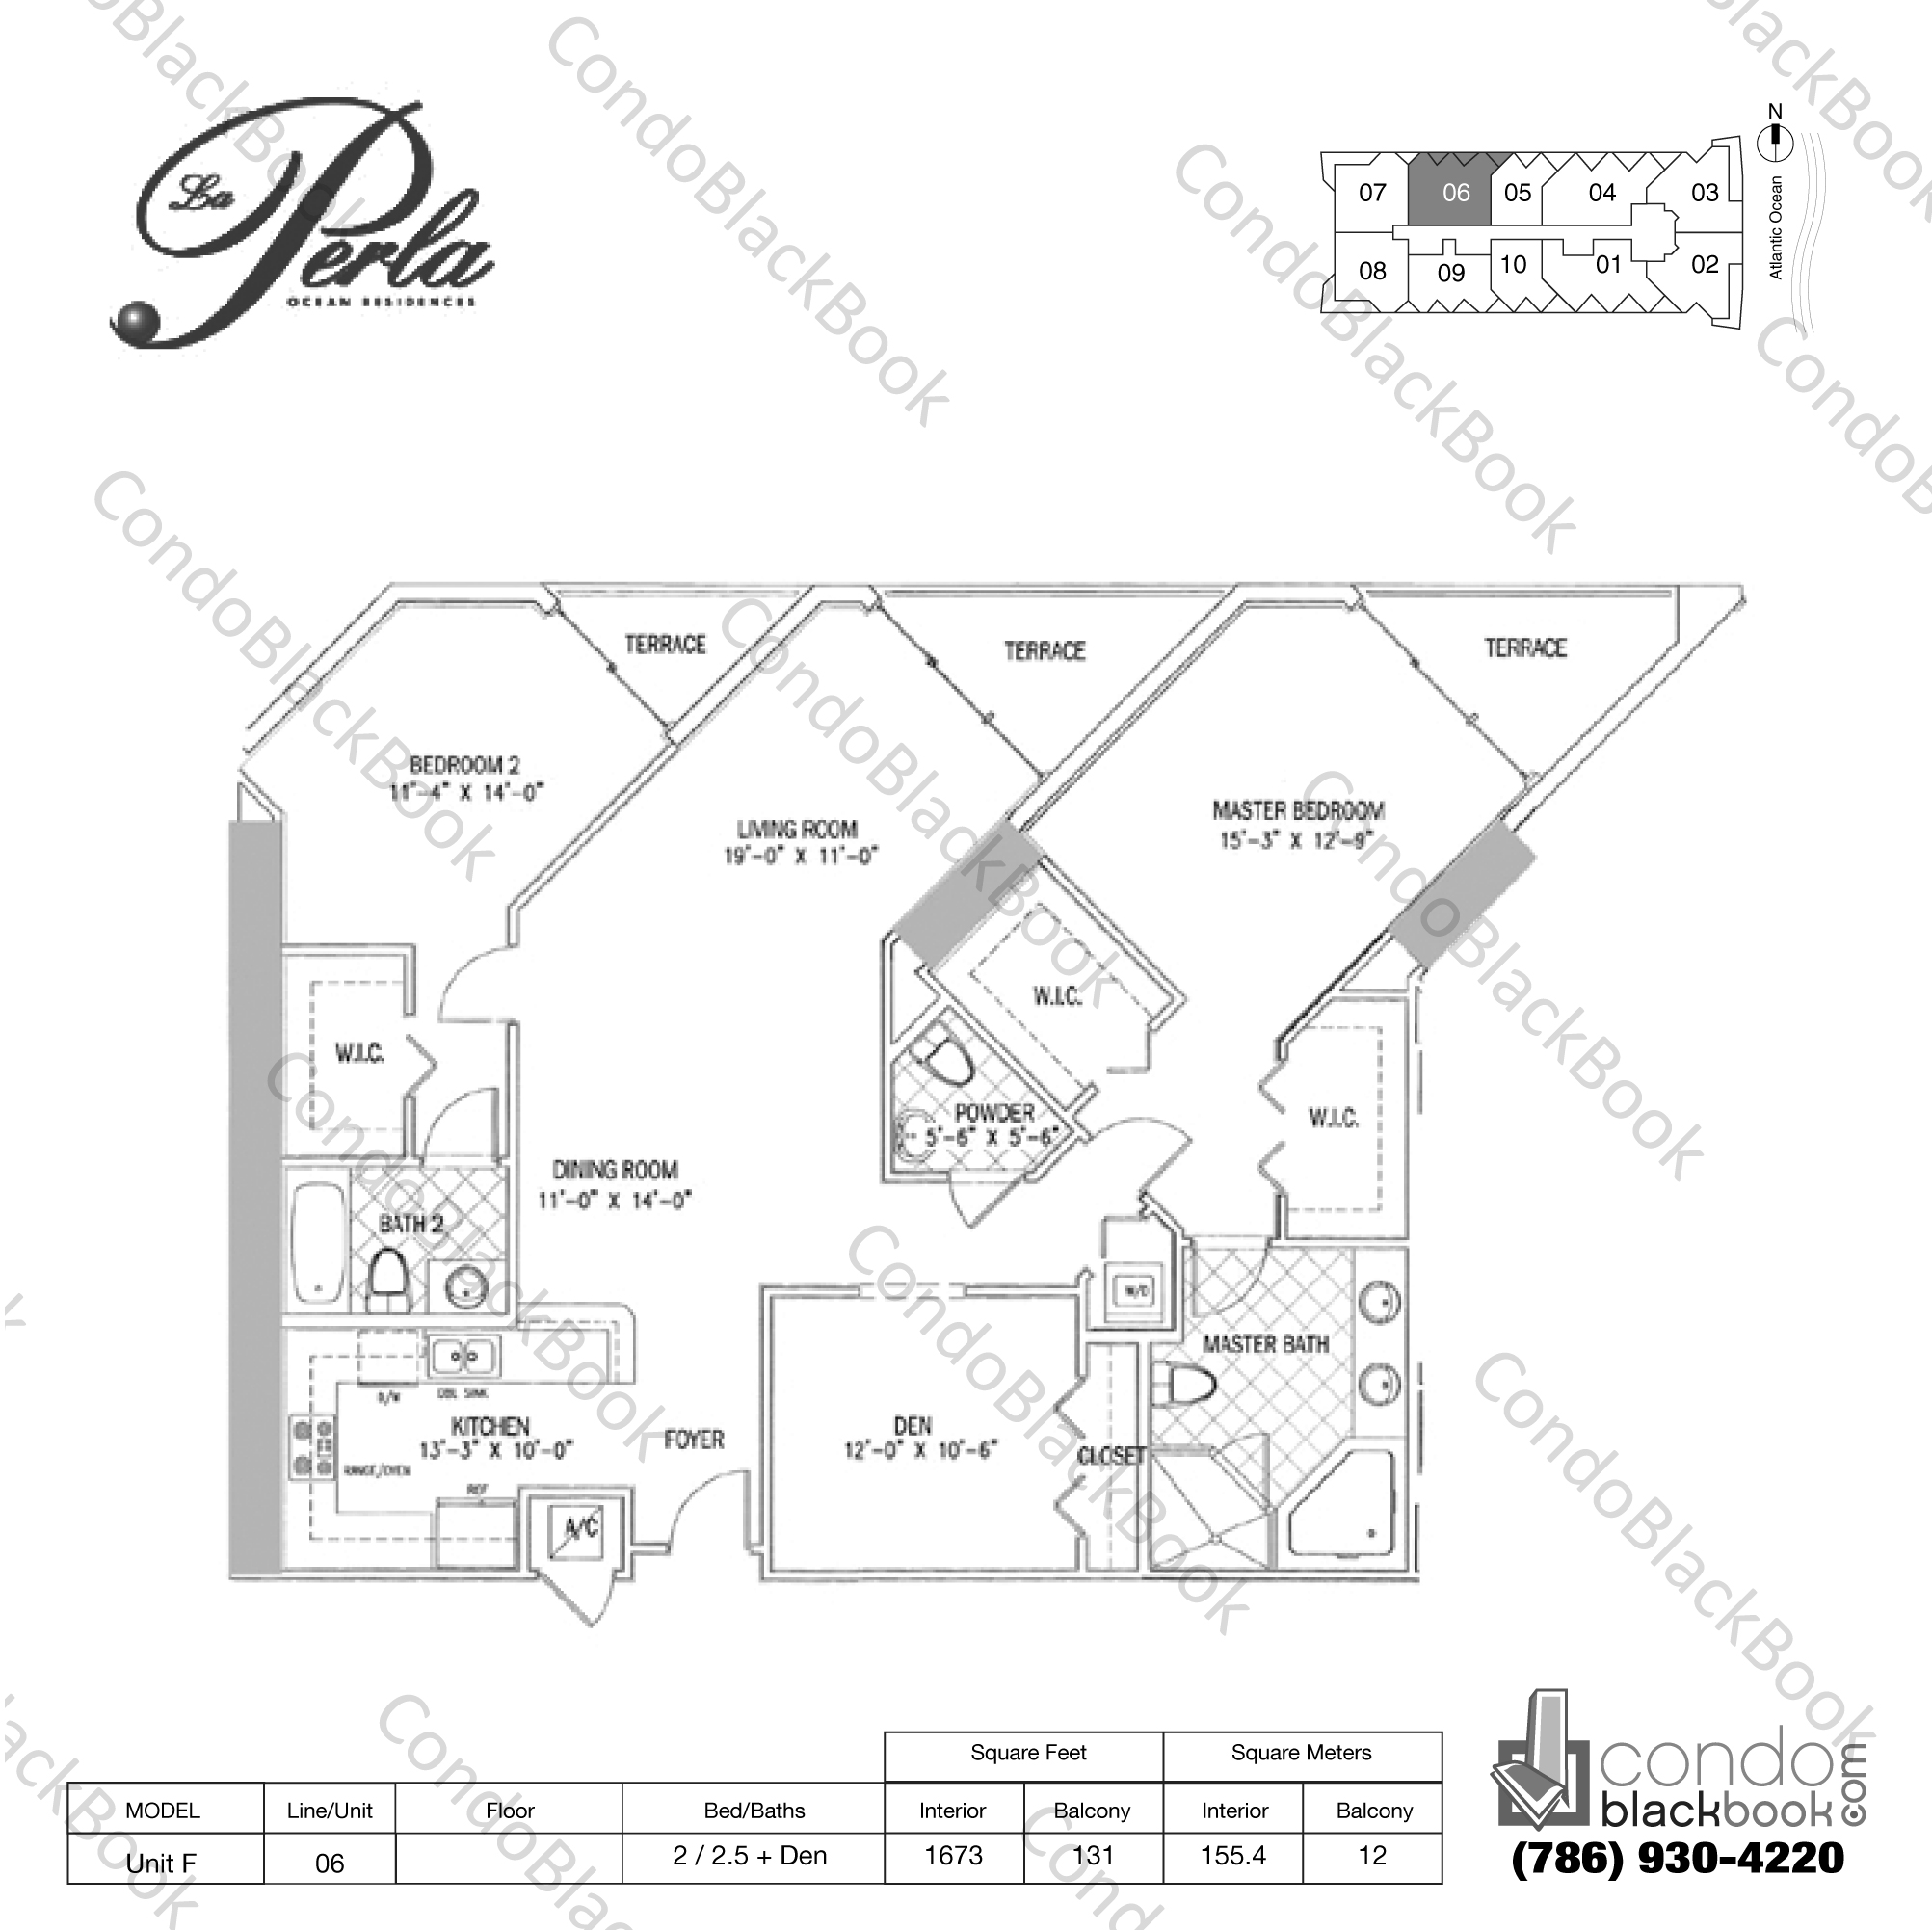 Floor plan for La Perla Sunny Isles Beach, model Unit F, line 06, 2 / 2.5 + Den bedrooms, 1673 sq ft